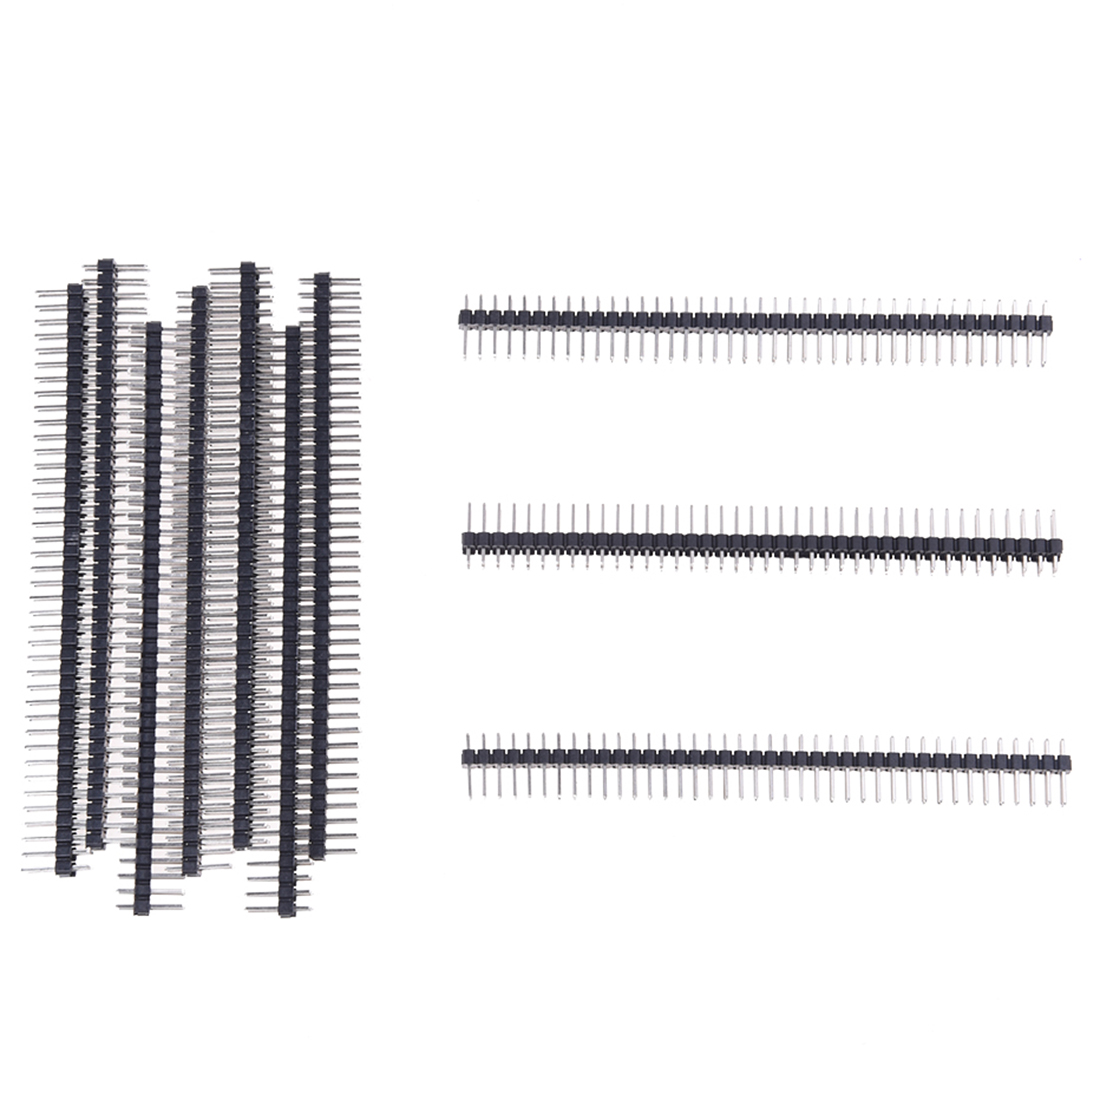 JFBL Hot 10 Pcs 2x40 Pin 2.54mm Pitch Double Row PCB Pin Headers